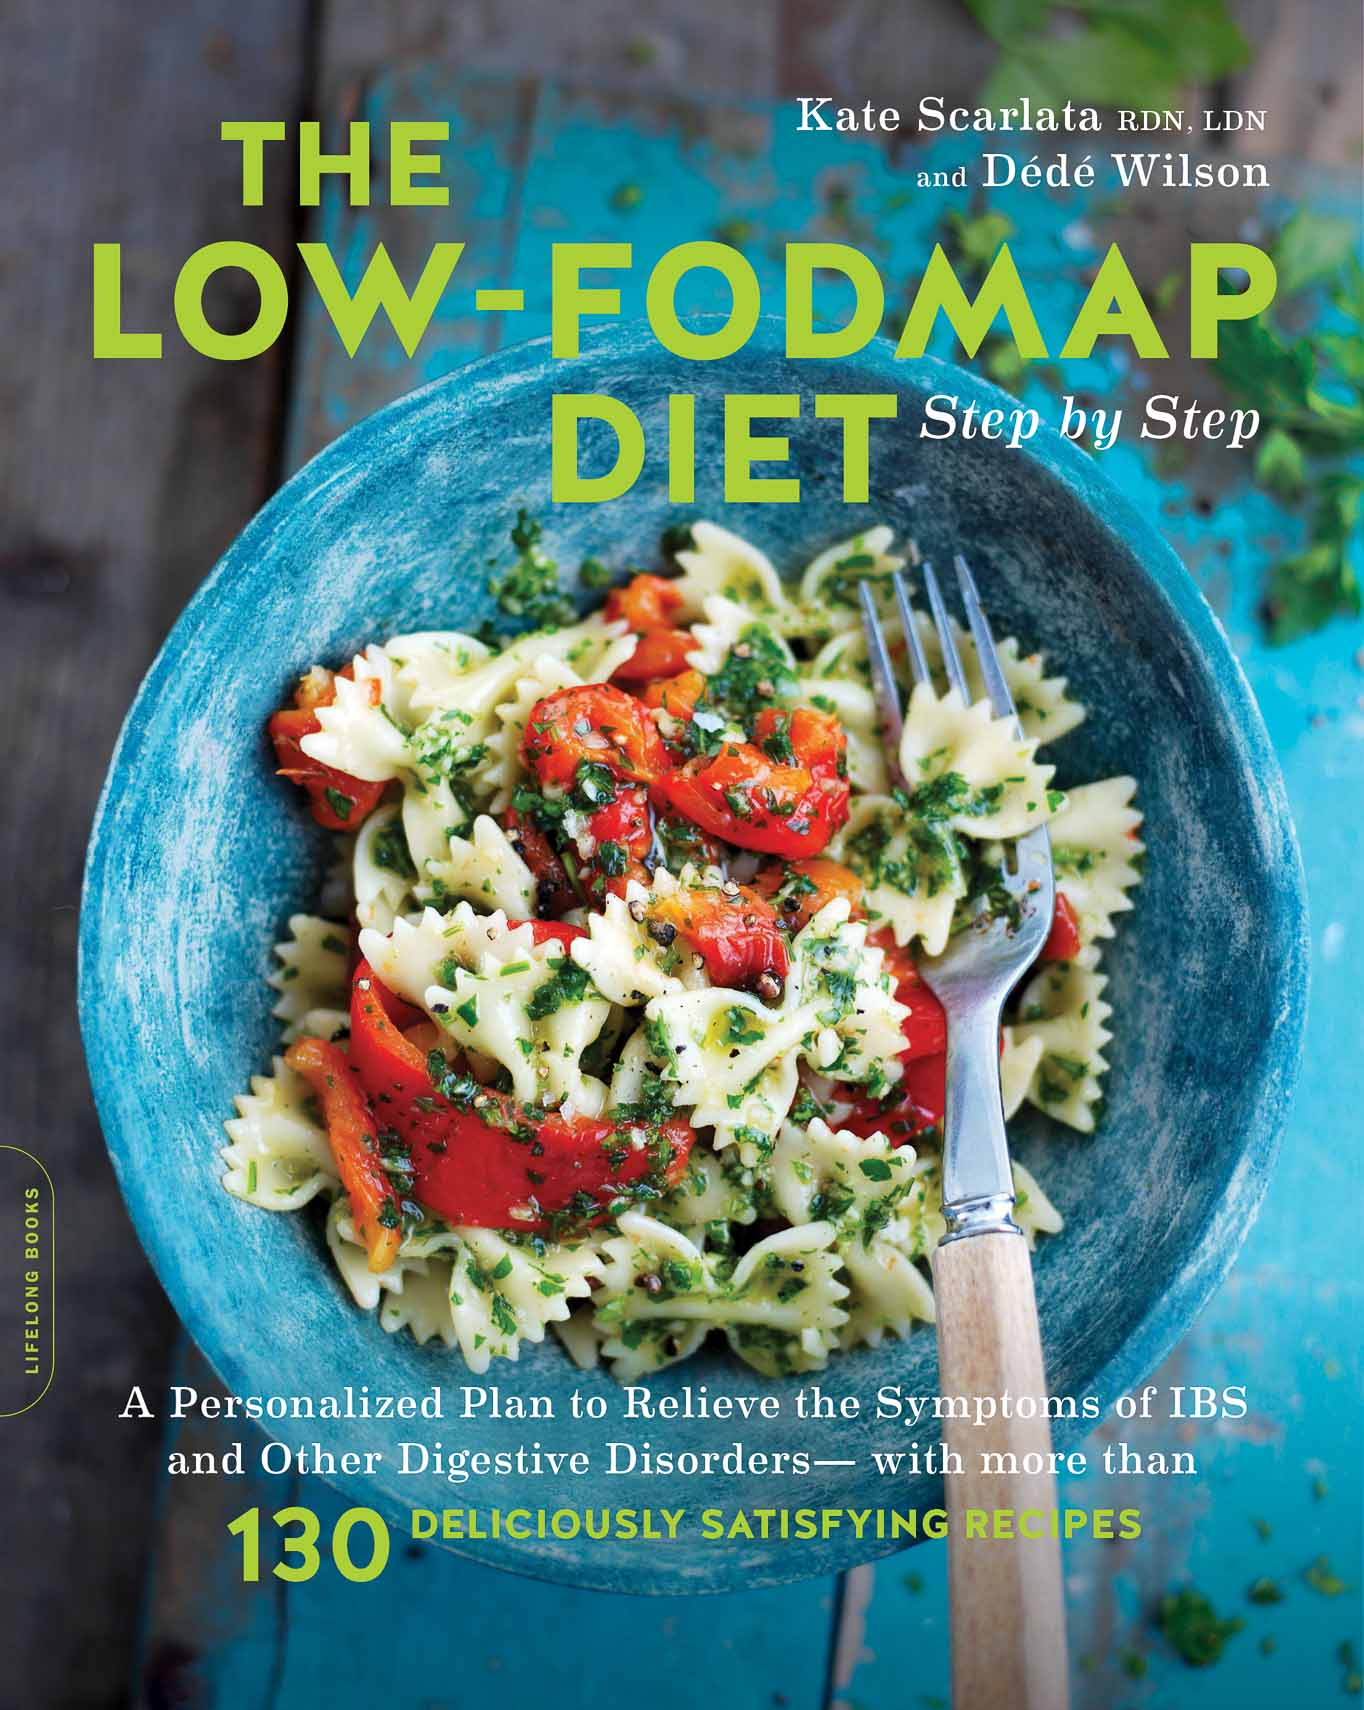 The Low FODMAP Diet Step by Step by Dédé Wilson and Kate Scarlata